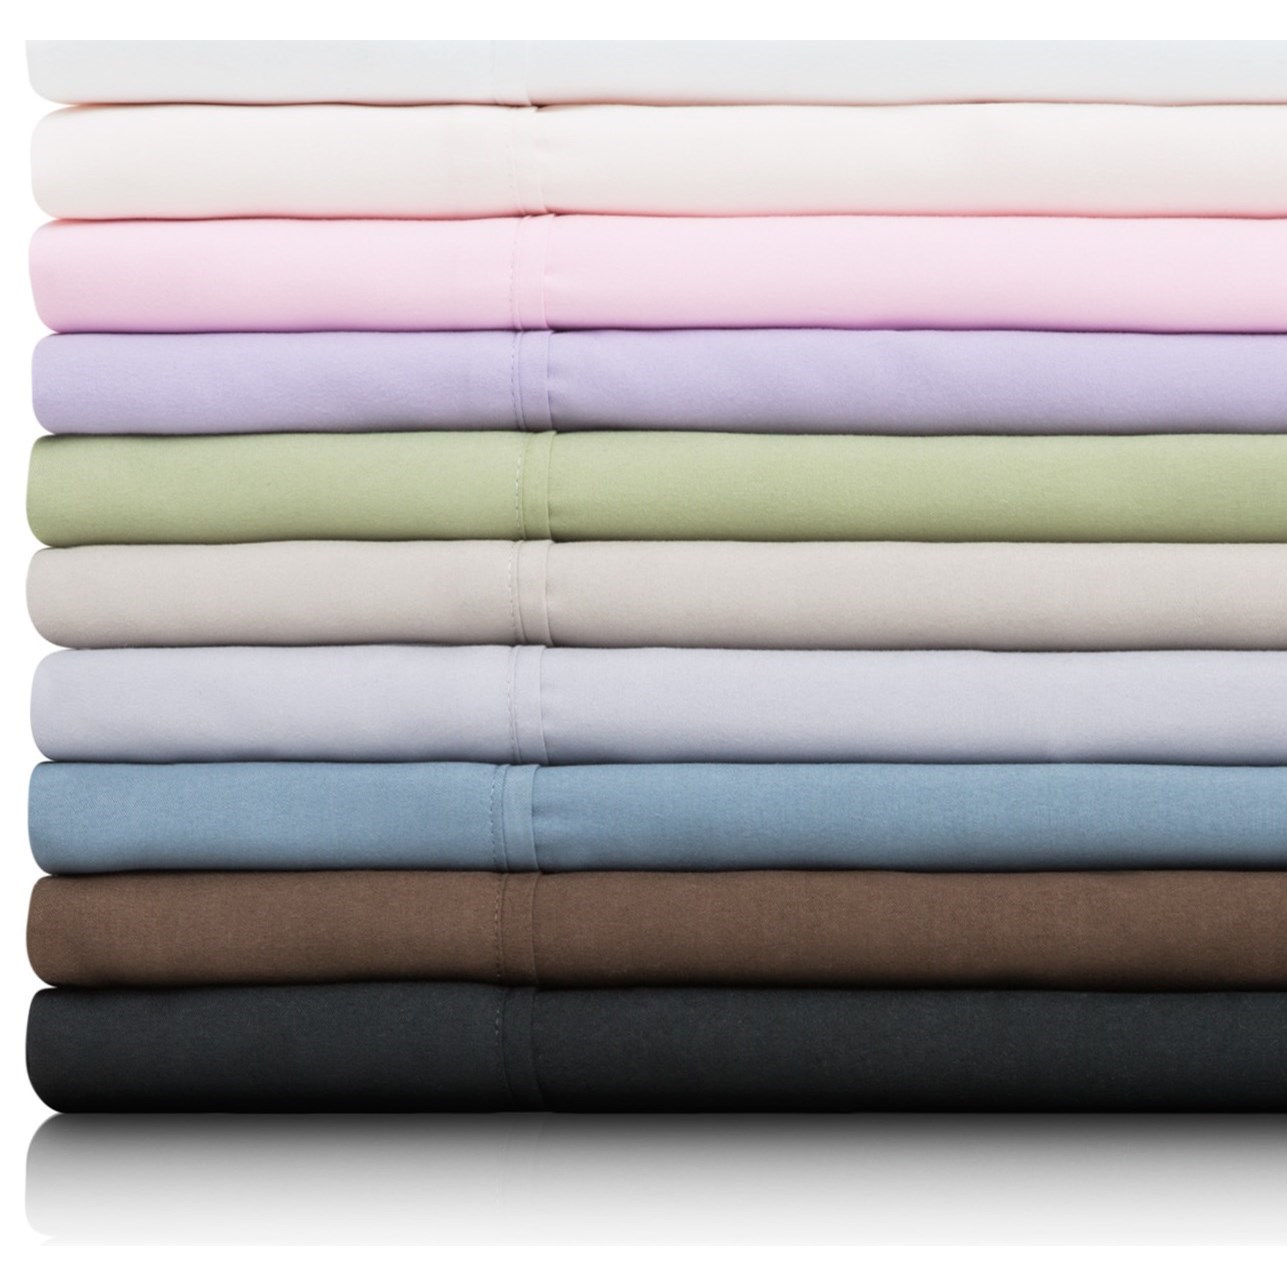 Malouf Brushed Microfiber Queen Woven™ Brushed Microfiber Pillowcases  - Item Number: MA90QQIVPC